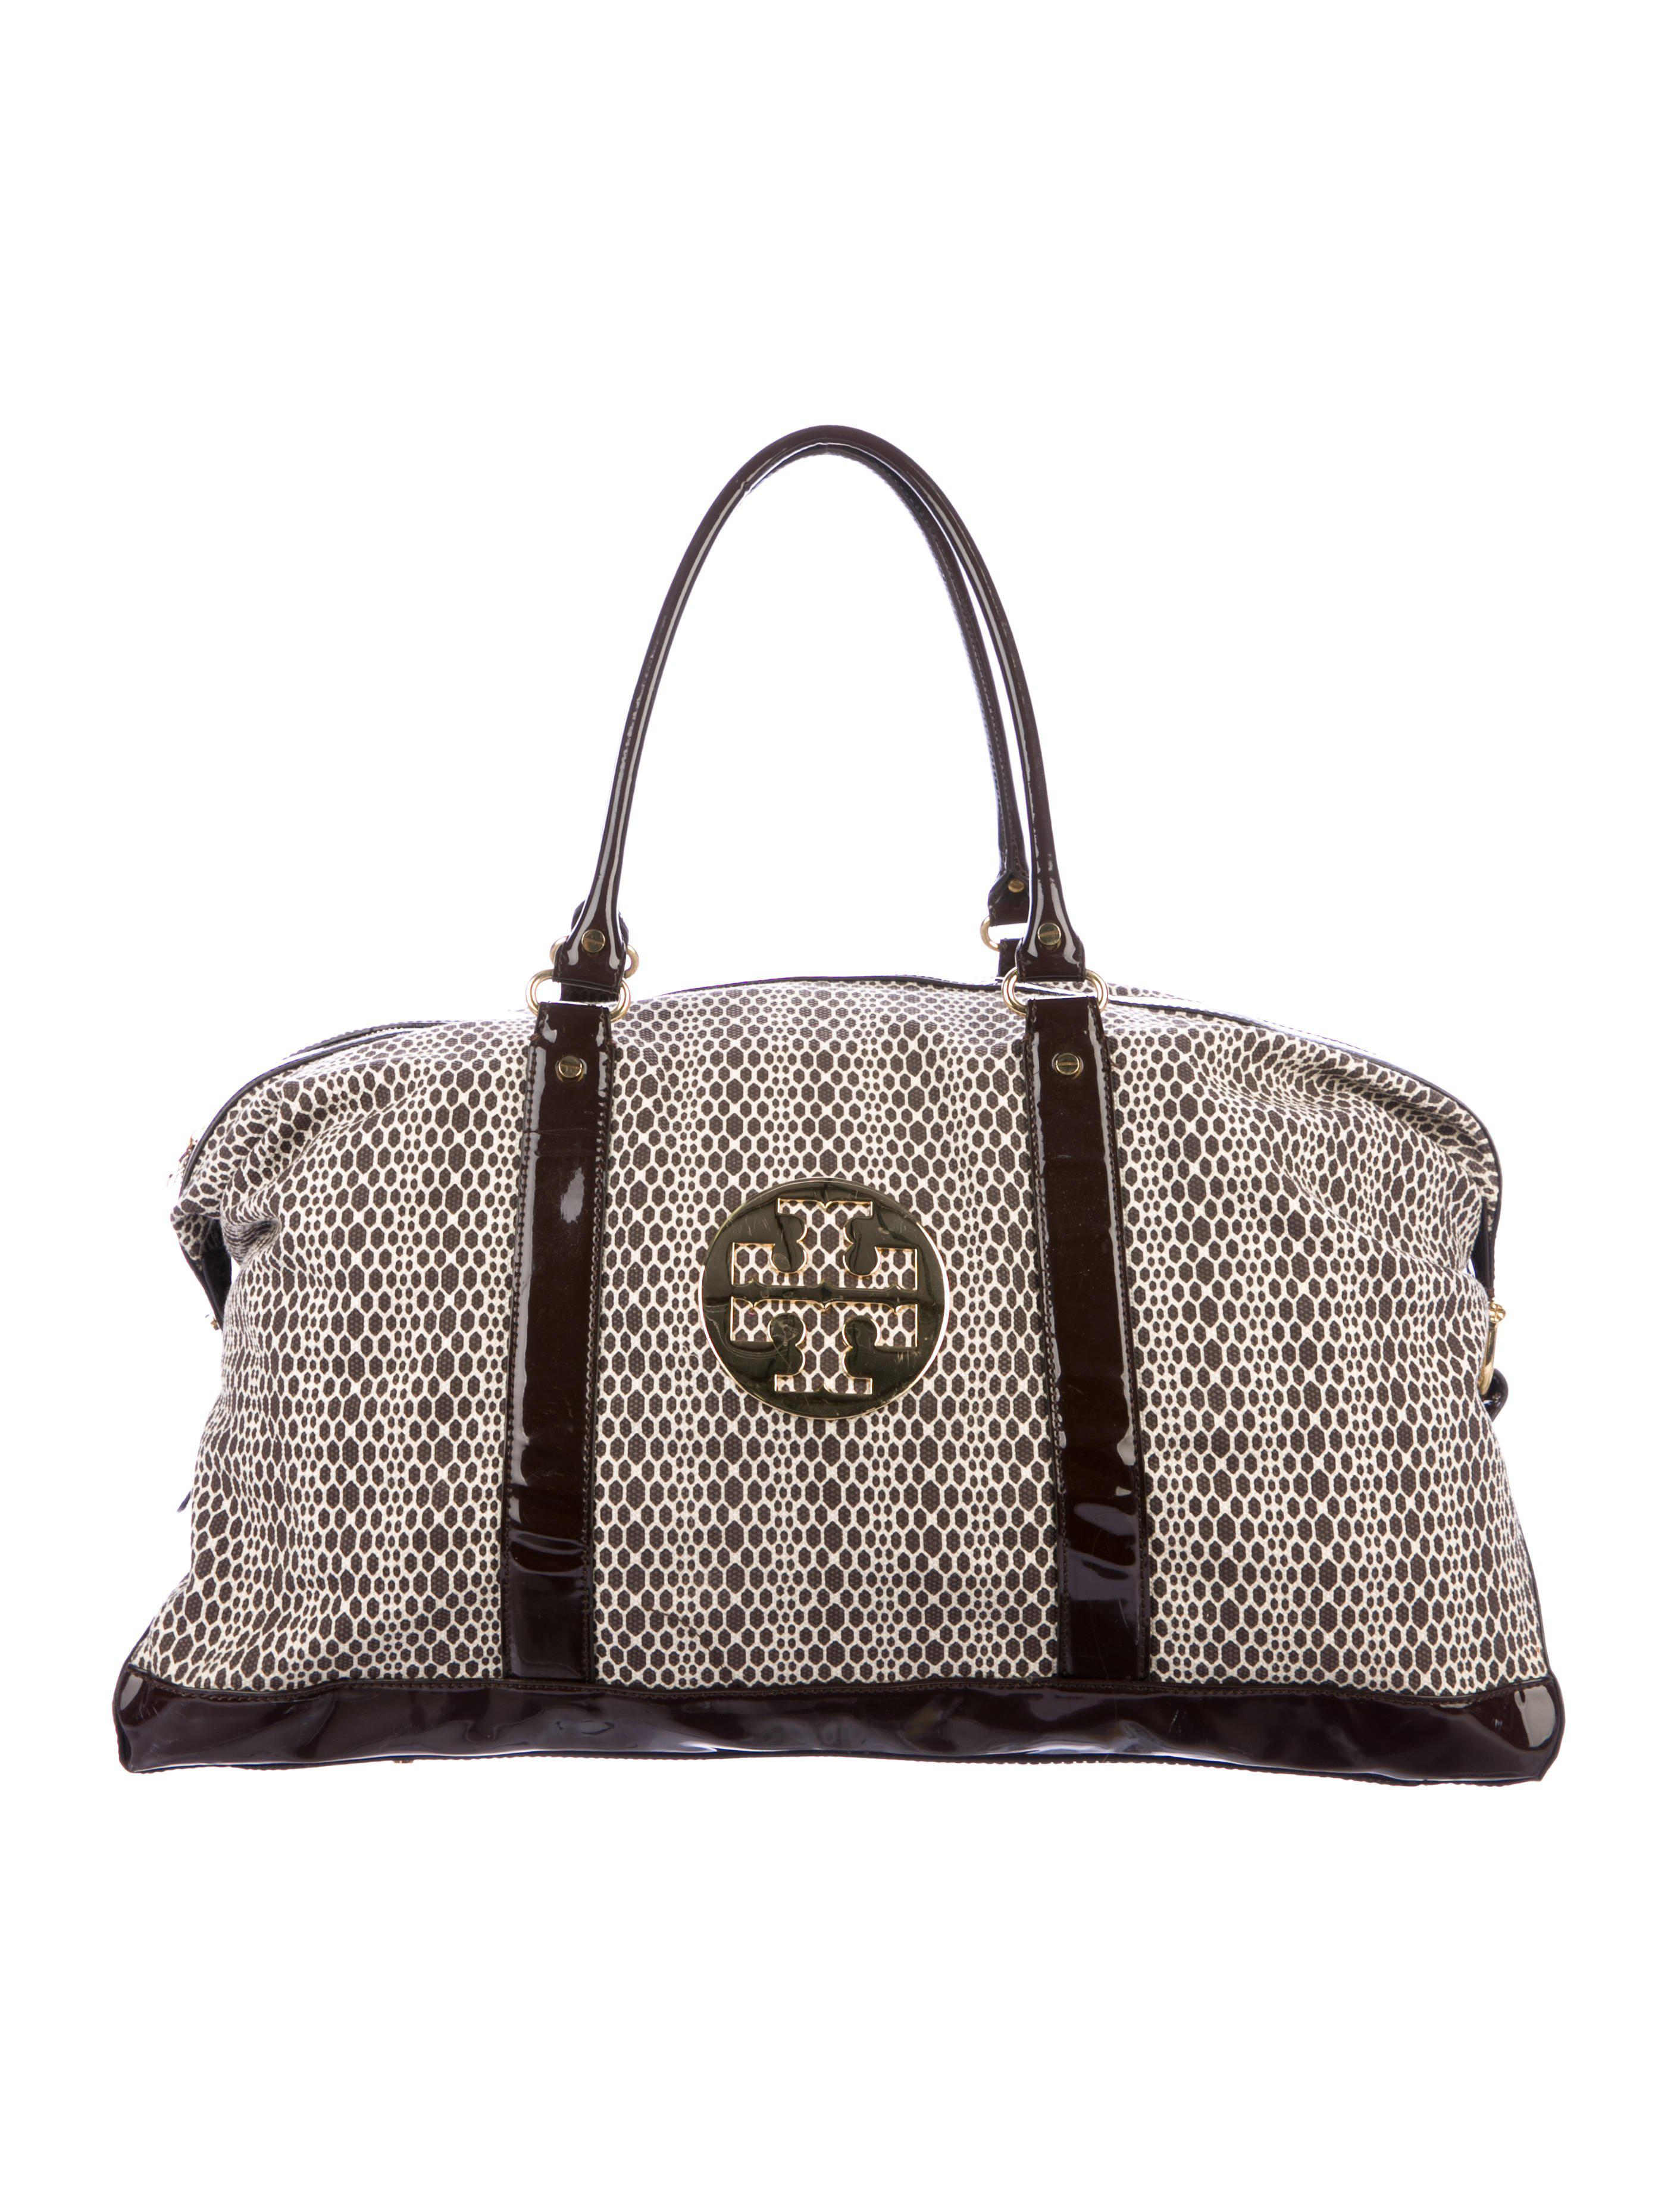 6382a34c30fd Lyst - Tory Burch Patent Leather-accented Canvas Weekender Brown in ...